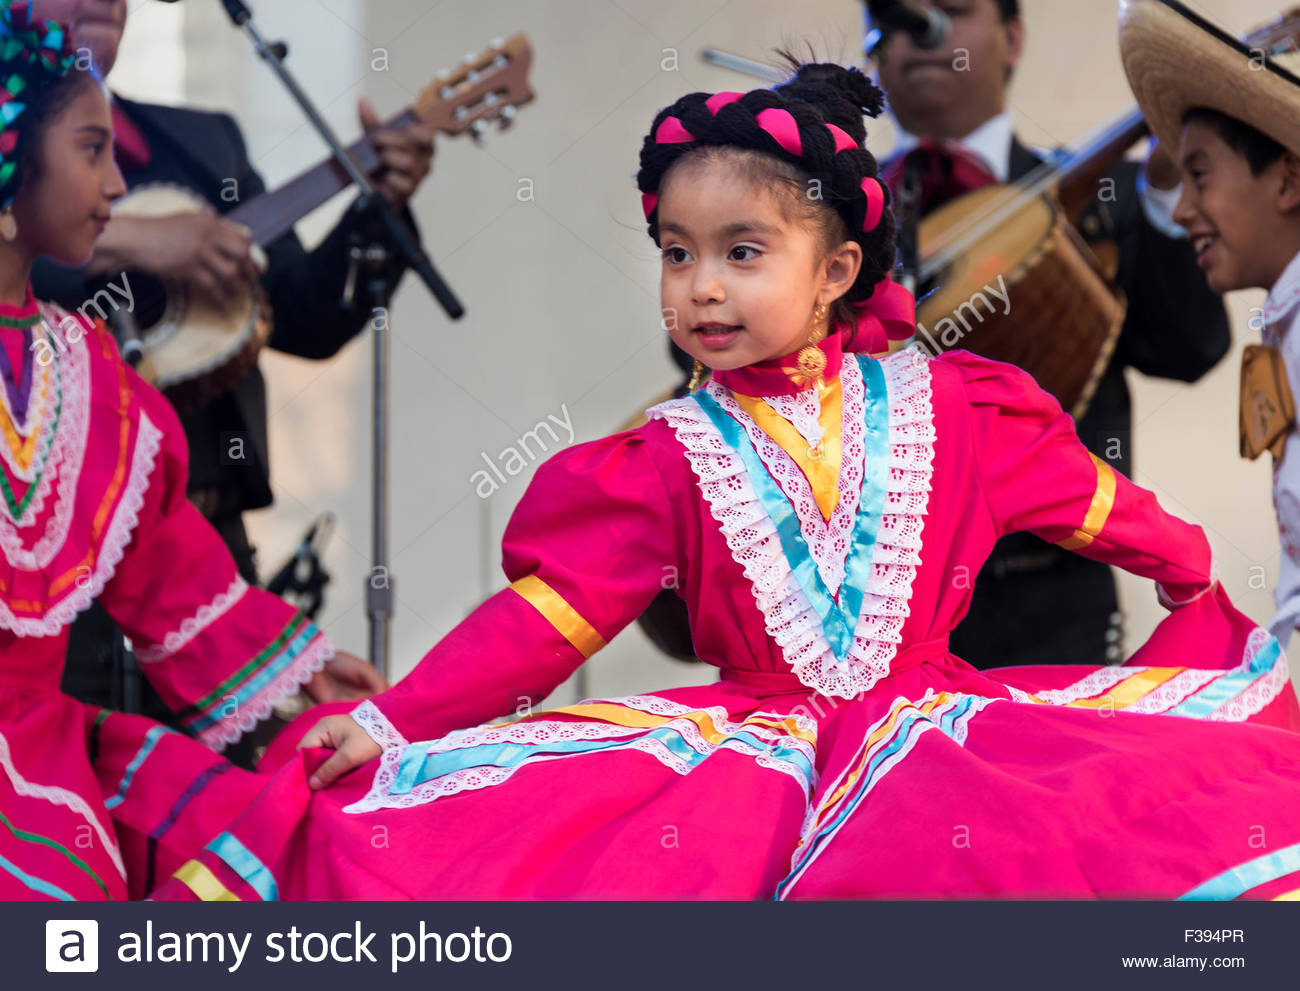 Children And Young Women Performing Mexican Folkloric Dance